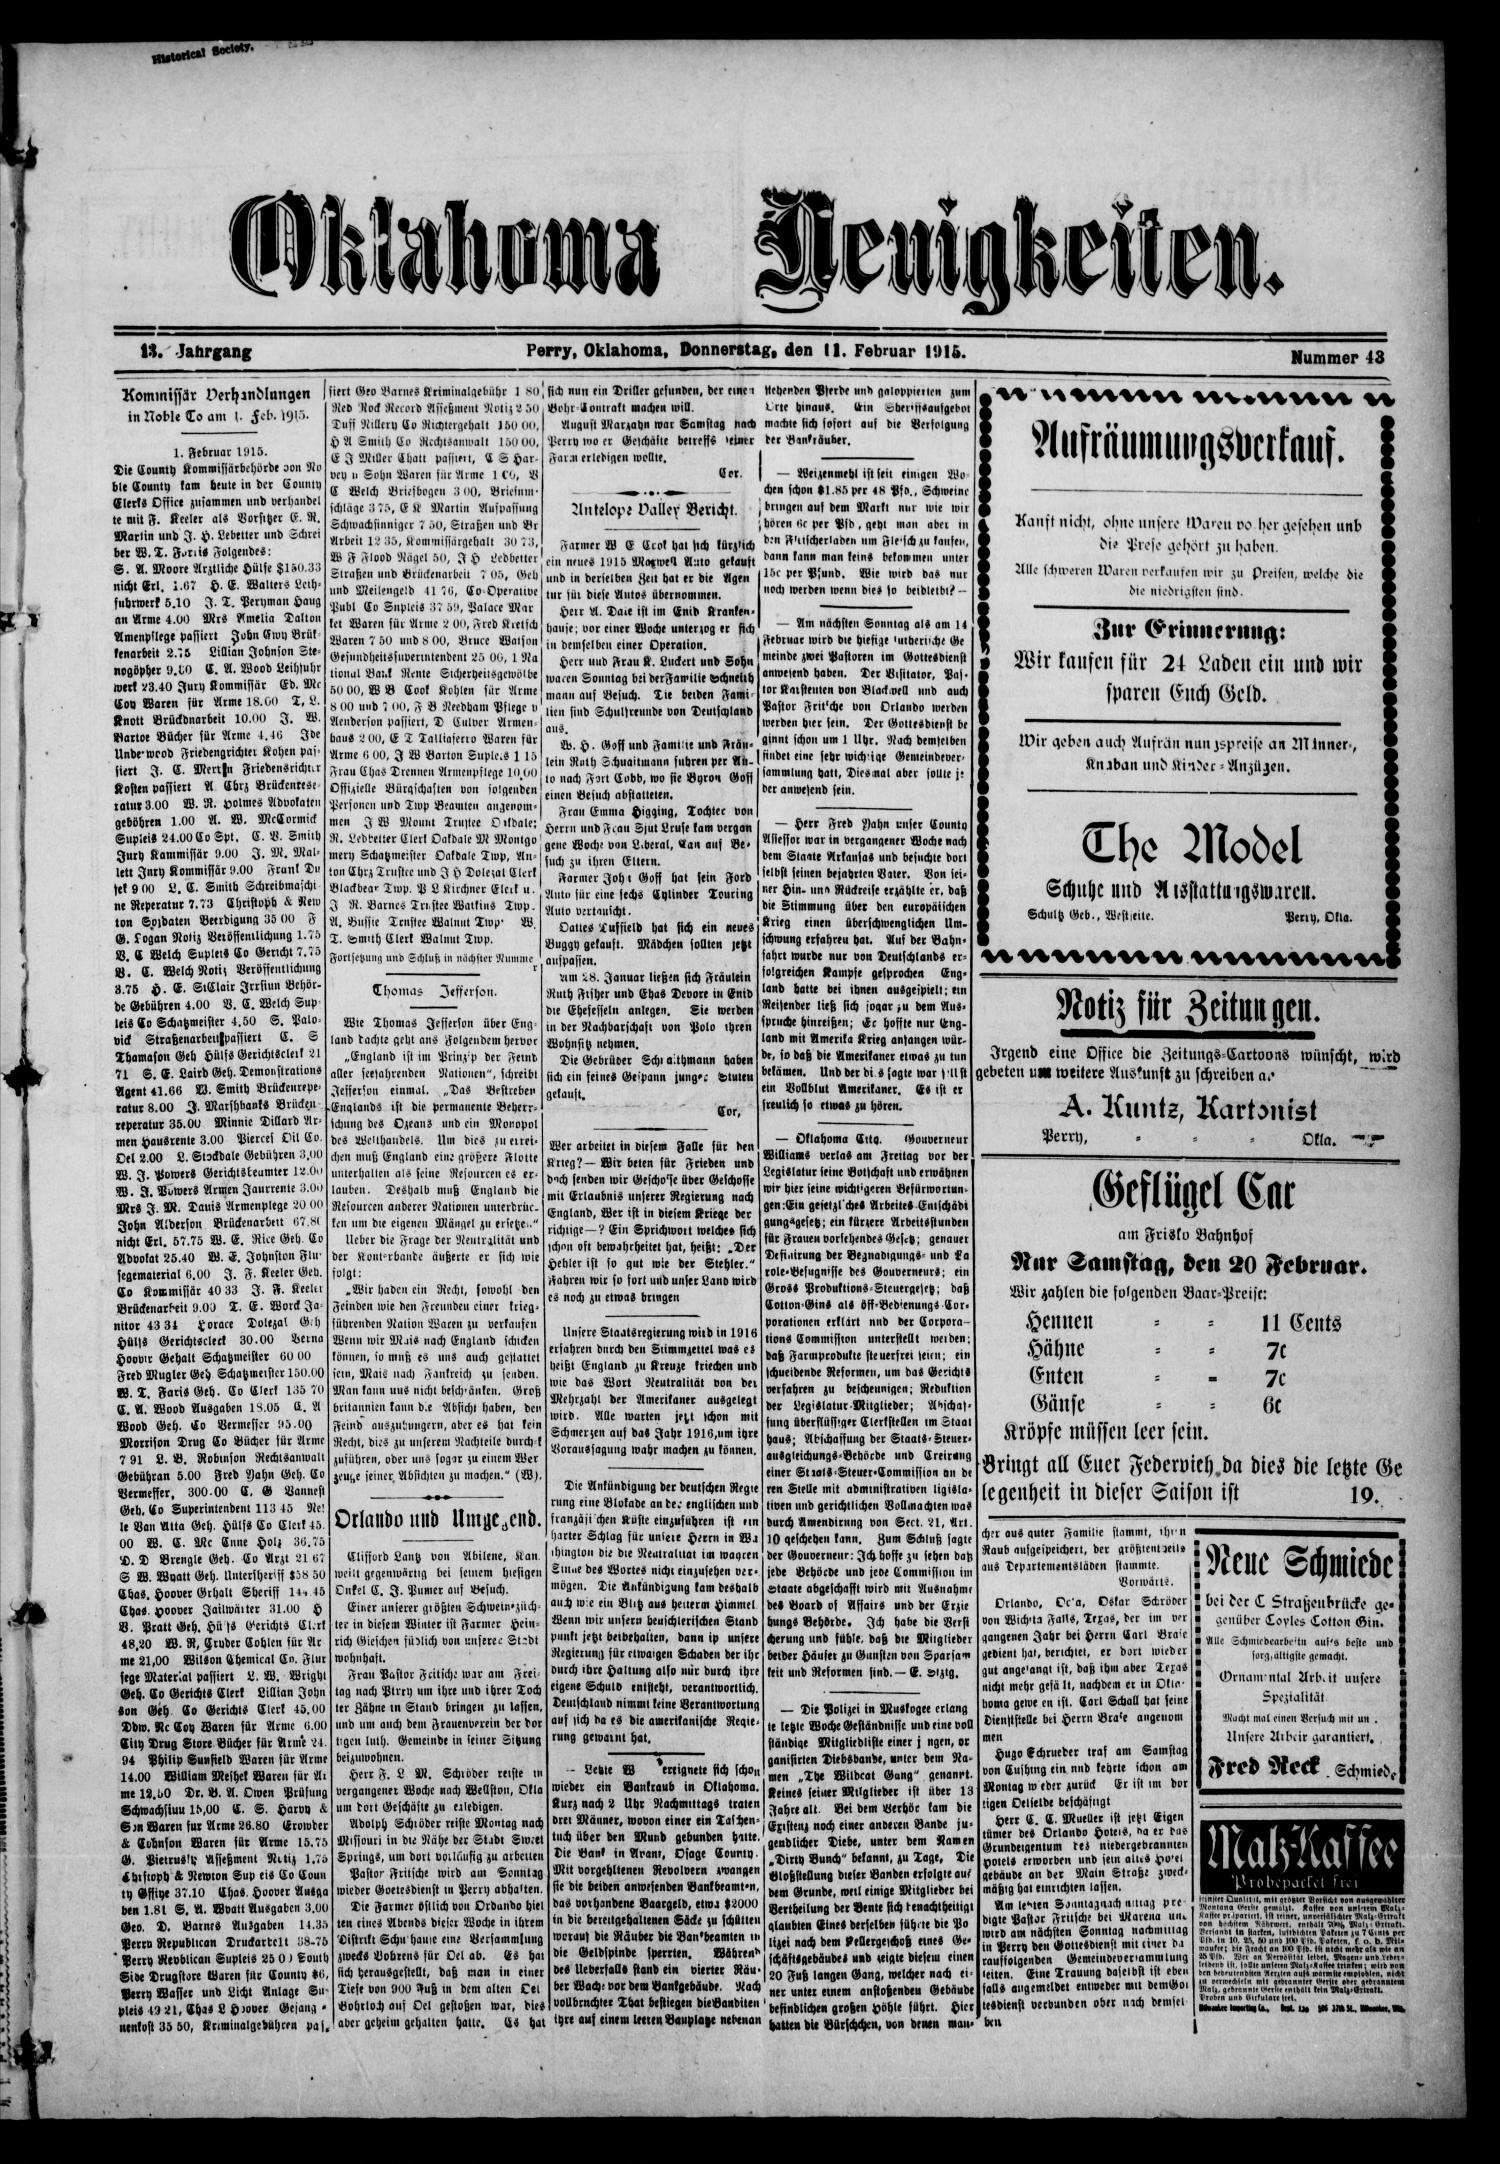 Oklahoma Neuigkeiten. (Perry, Okla.), Vol. 13, No. 43, Ed. 1 Thursday, February 11, 1915                                                                                                      [Sequence #]: 1 of 4